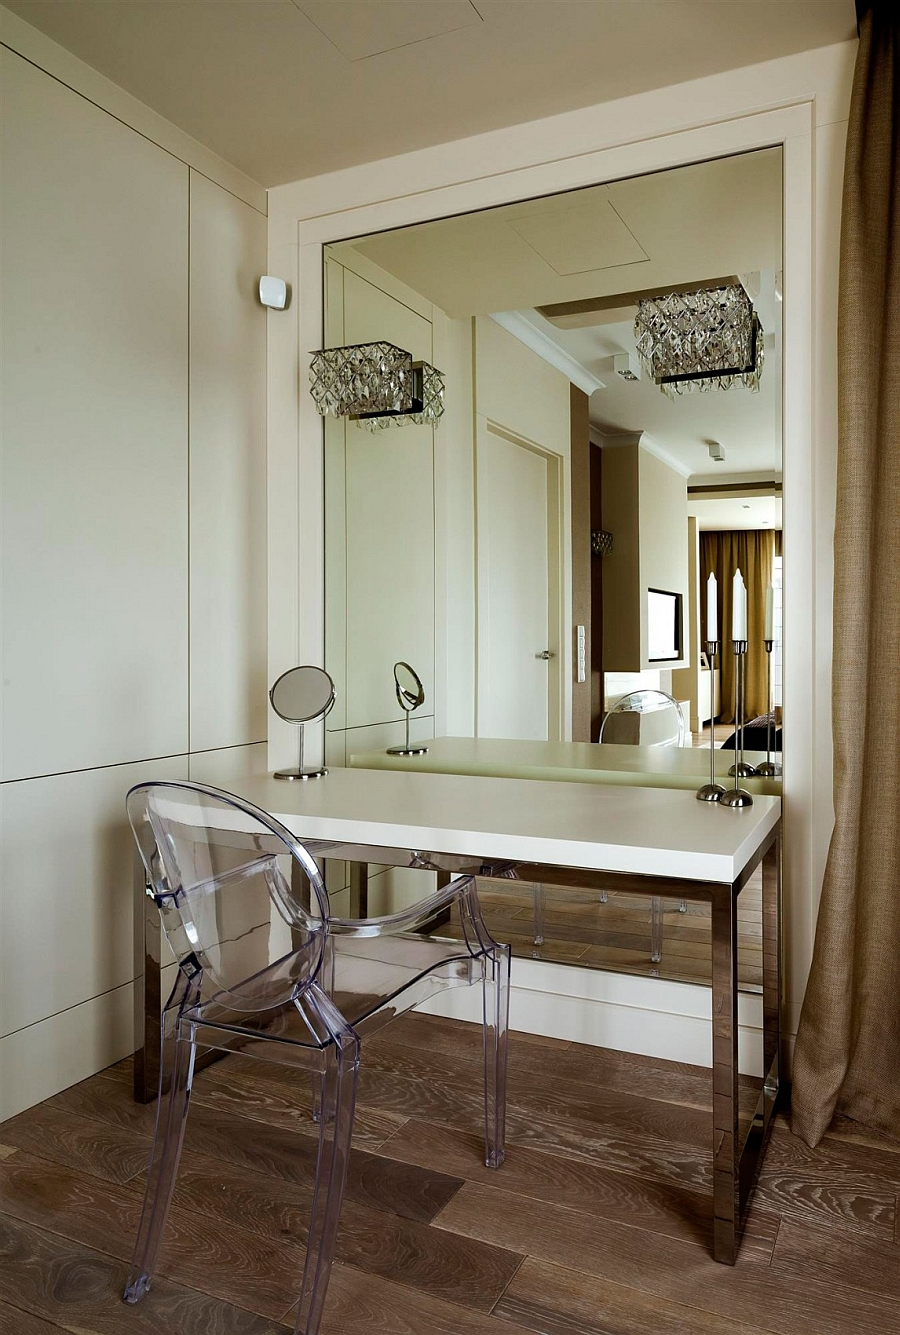 Acrylic chairs and wall sconces for visually airy interiors